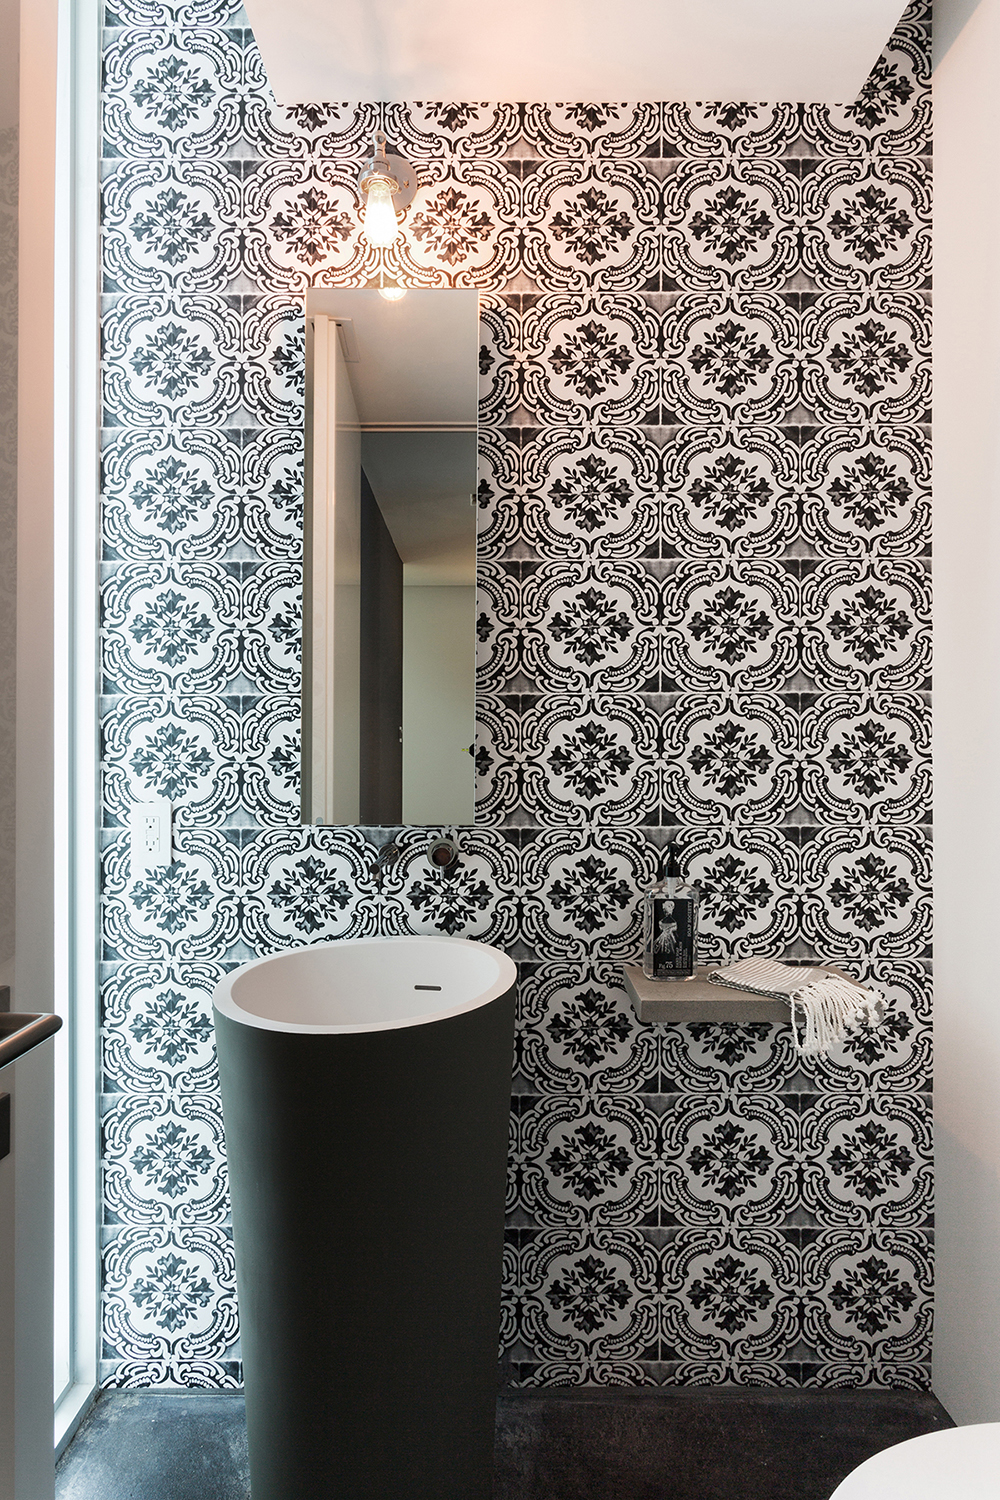 Bathroom with a wall paper